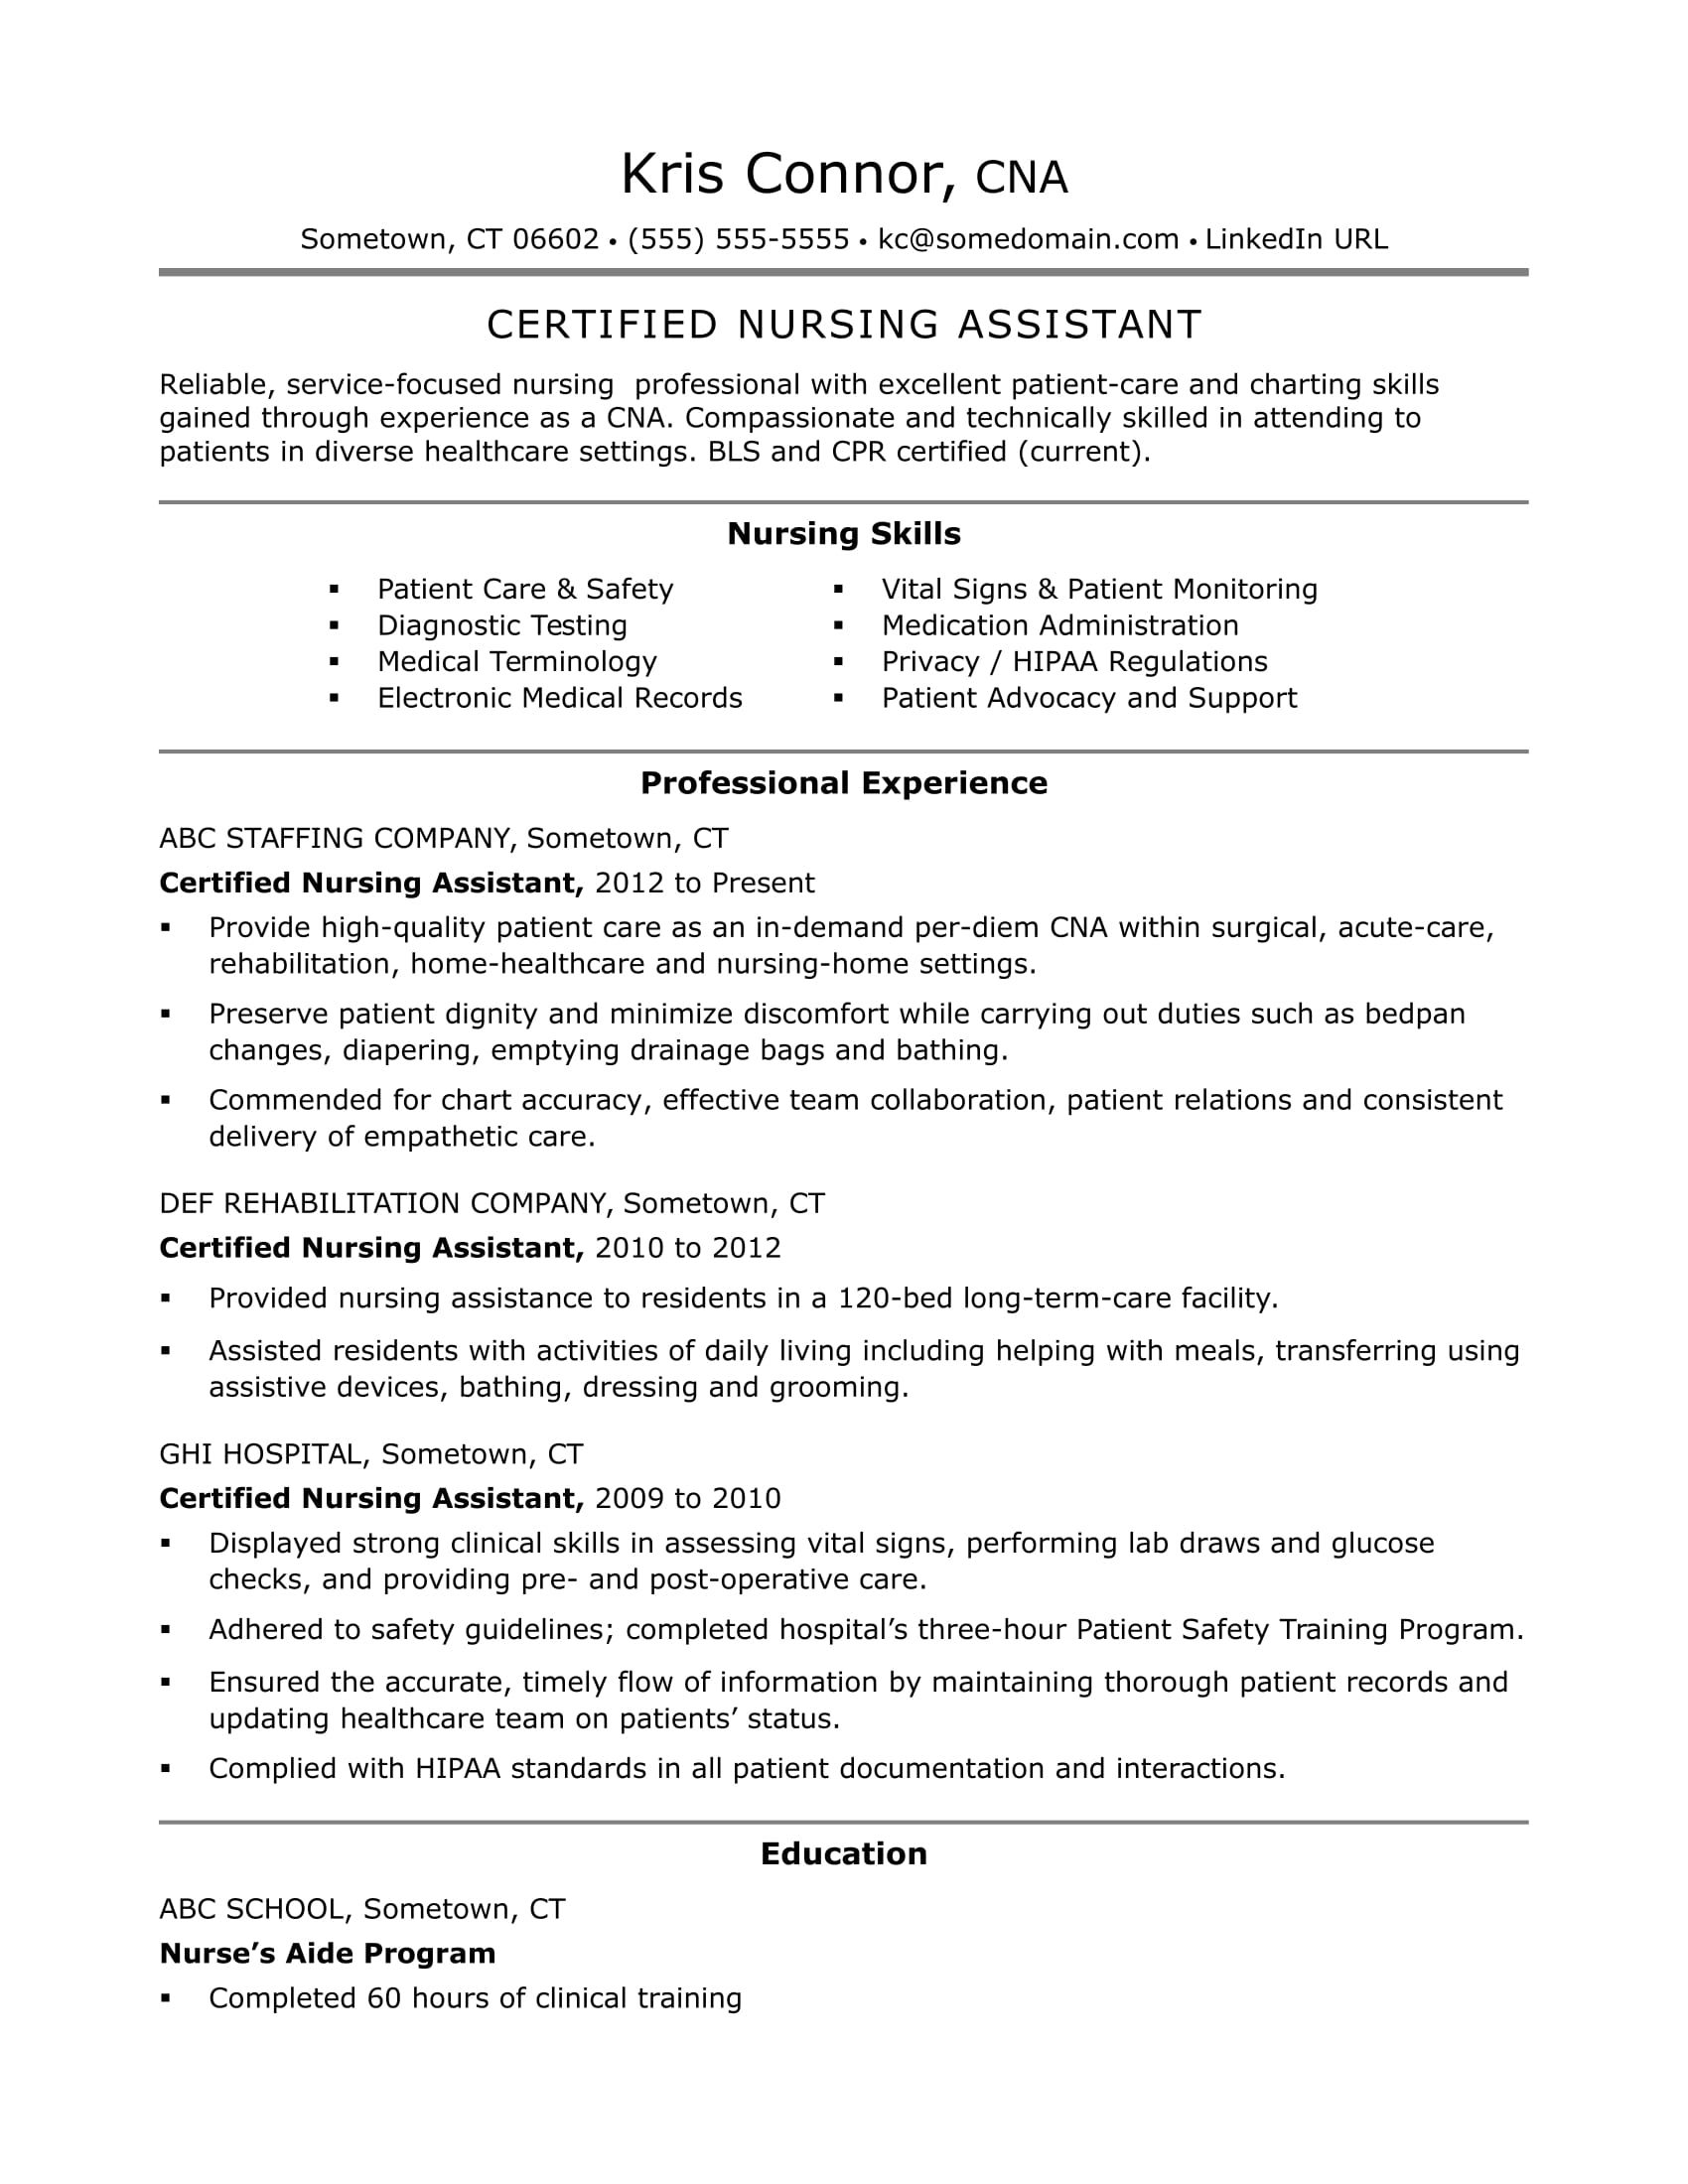 cna resume example - Cna Job Description For Resume